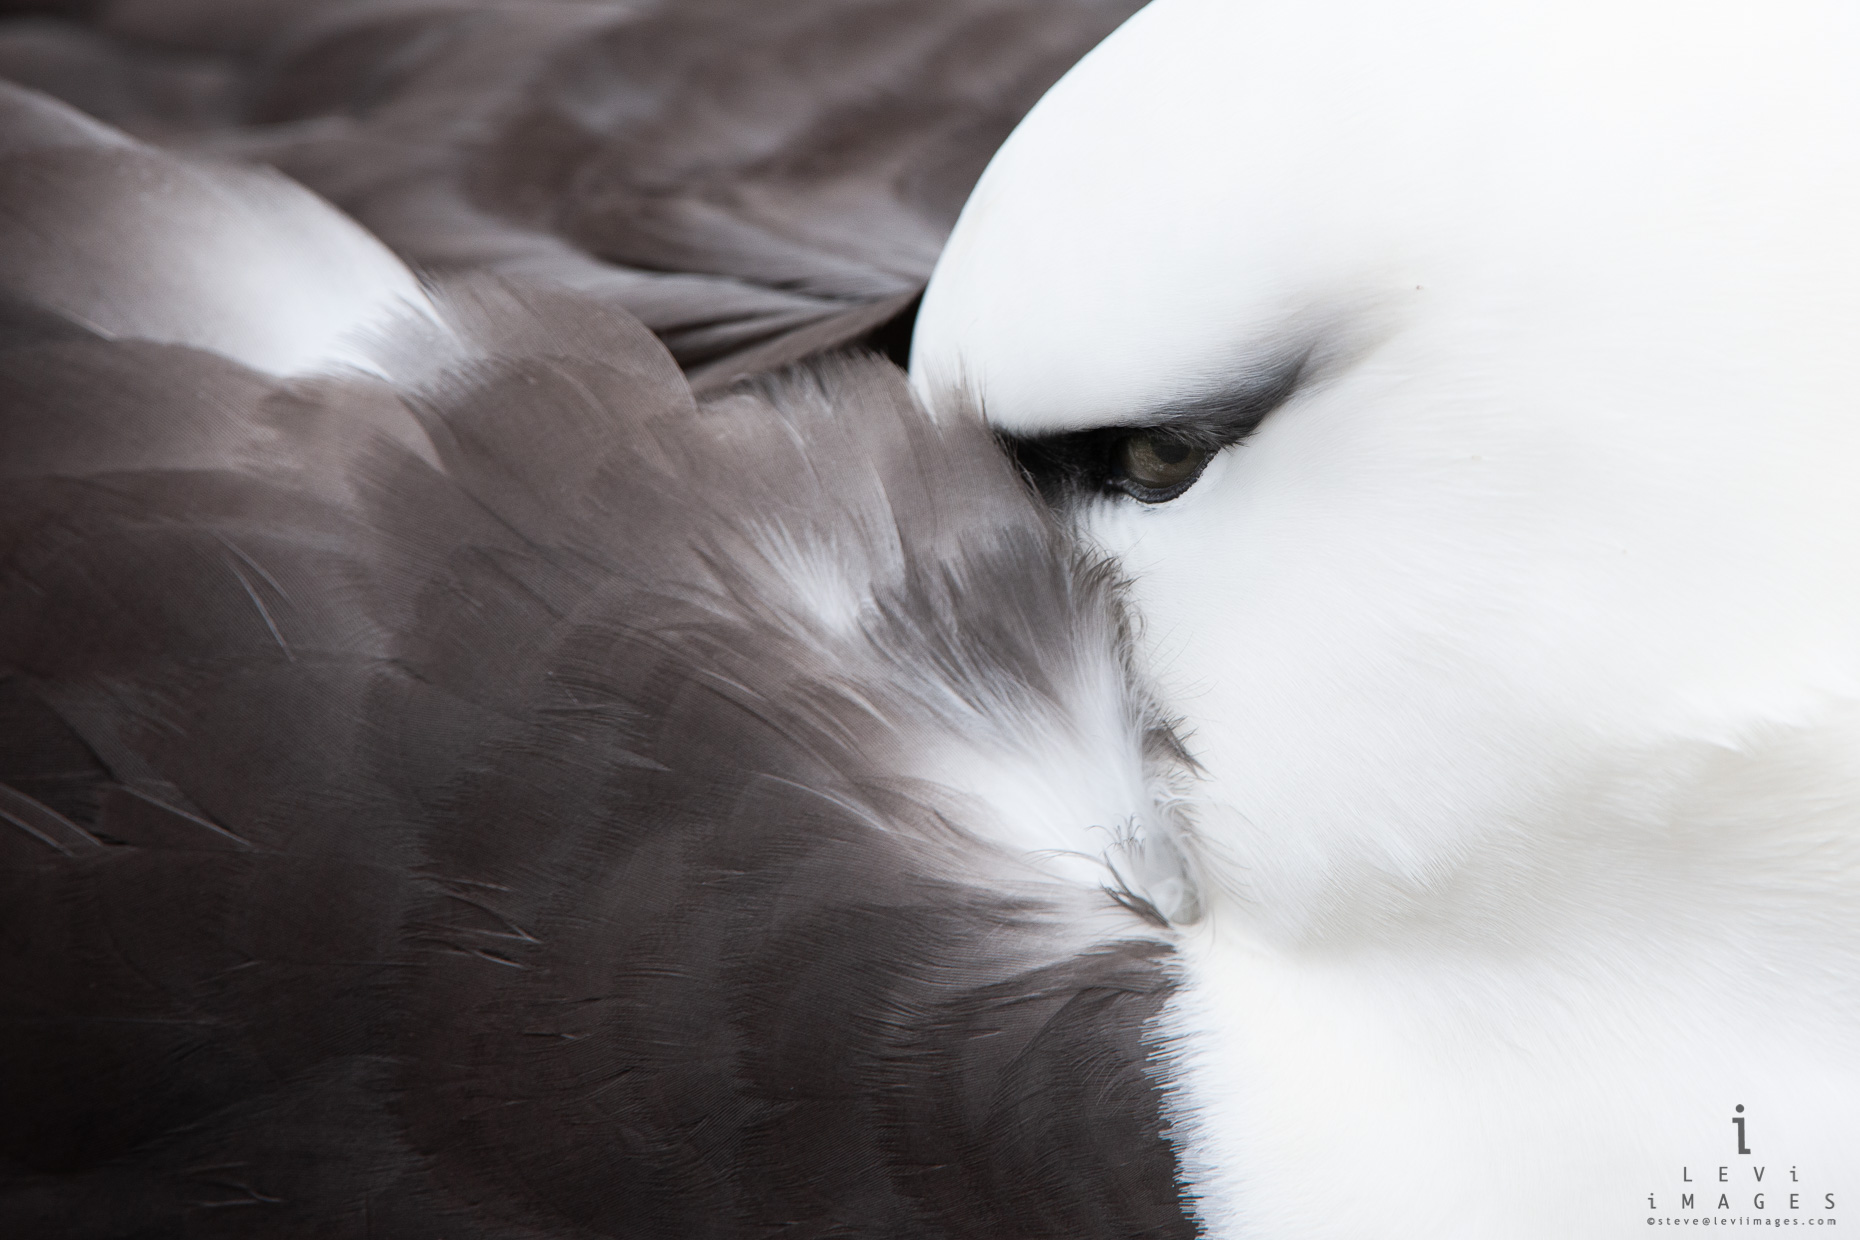 Black-browed albatross (Thalassarche melanophris) close up. Eye and Feather detail. New Island, Falkland Islands